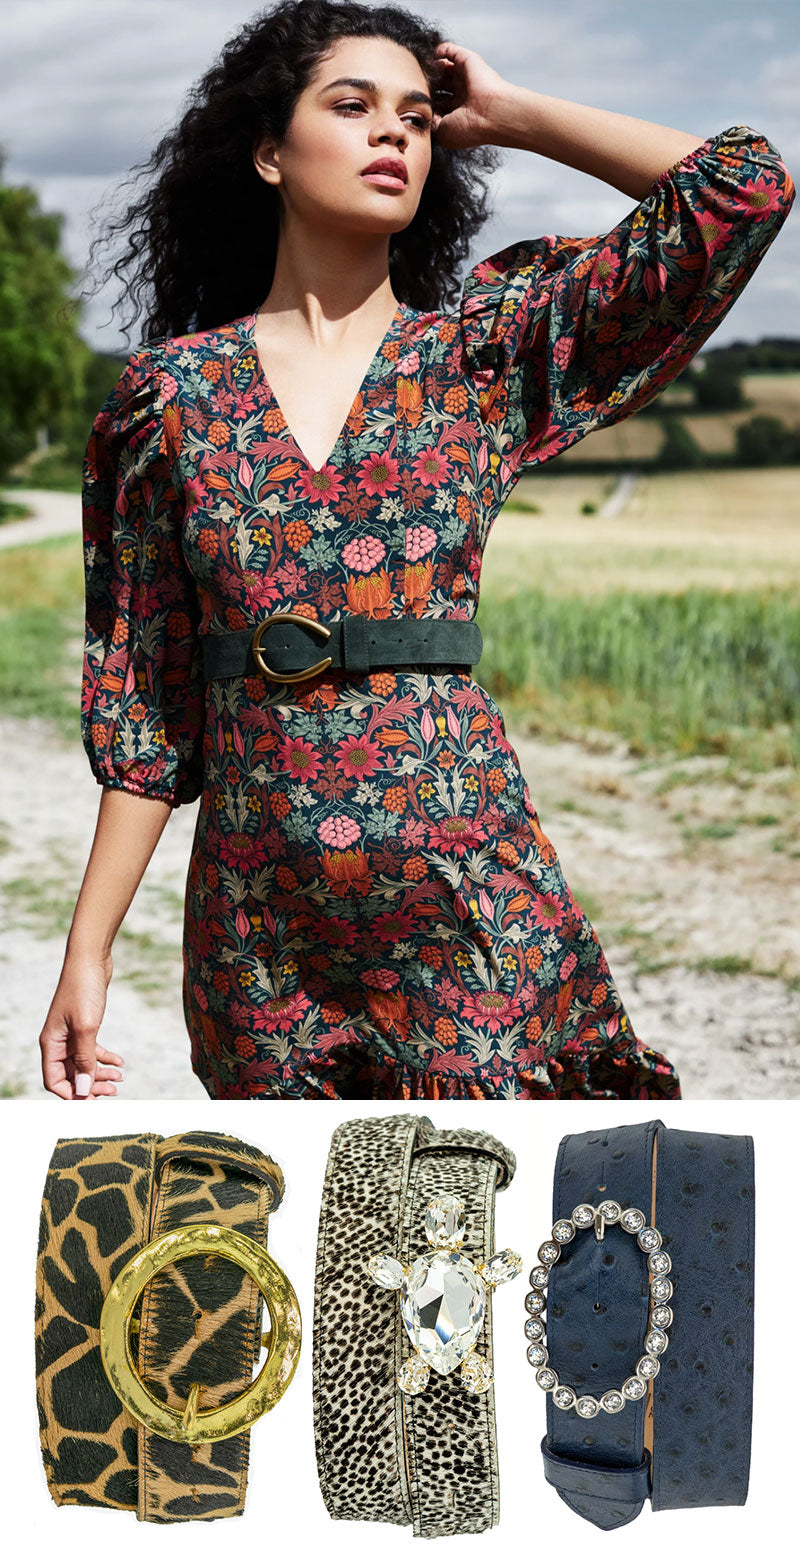 ridleylondon-printed-floral-silk-octavia mid-axi-made-to-measure-dress-with-peachy-belts